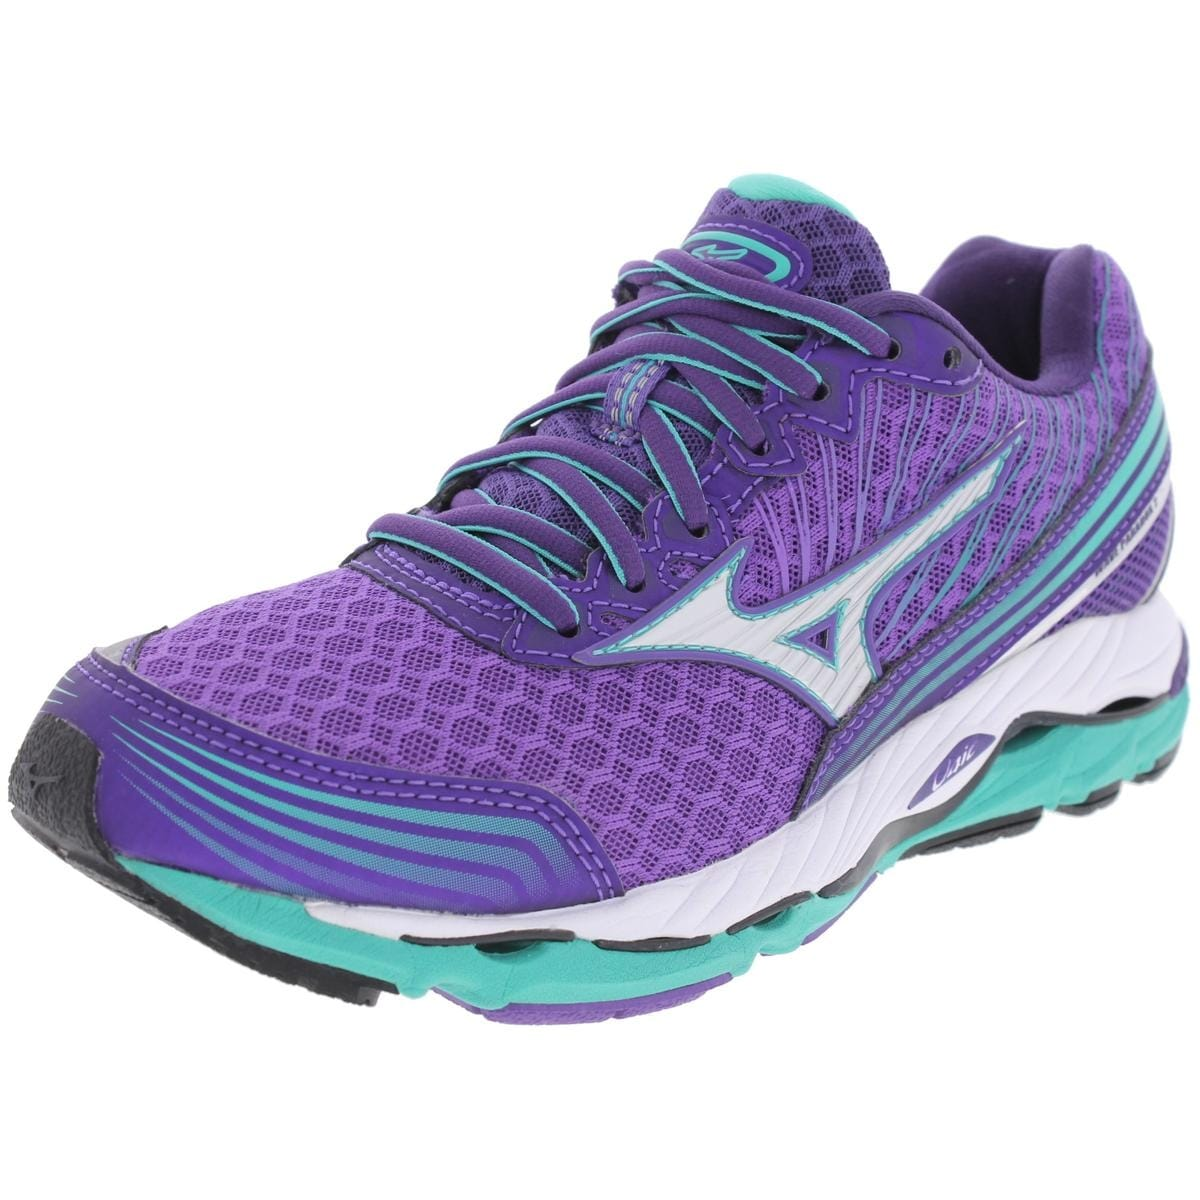 f7f97844e152 Mizuno Womens Wave Paradox 2 Running Shoes Lightweight Athletic - 6.5  medium (b,m)